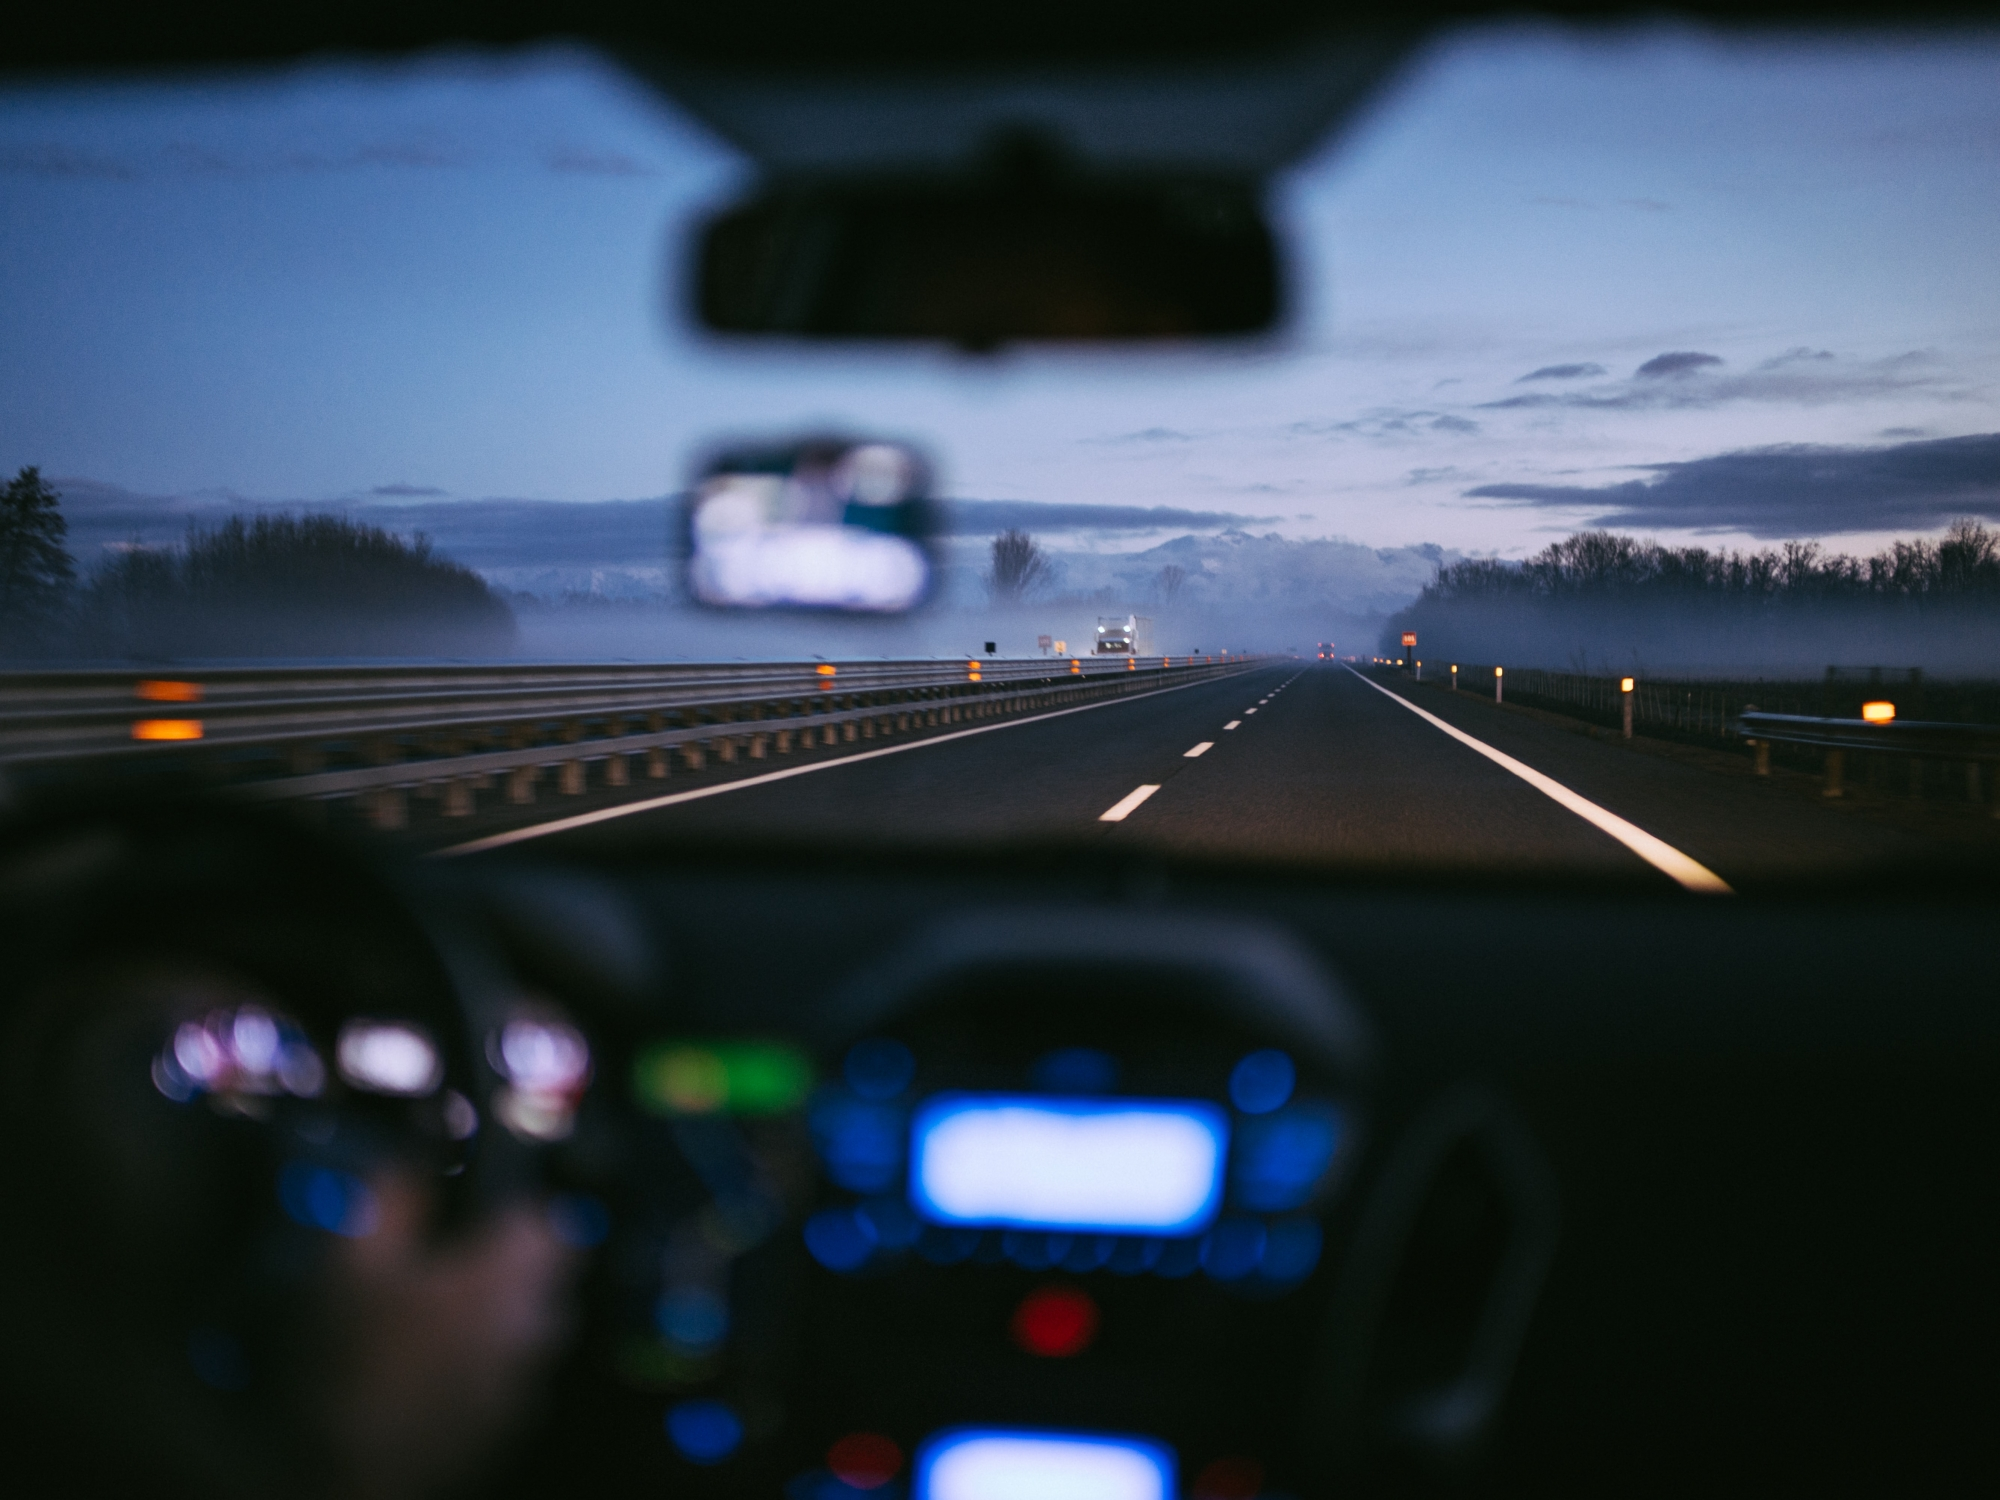 driving down road